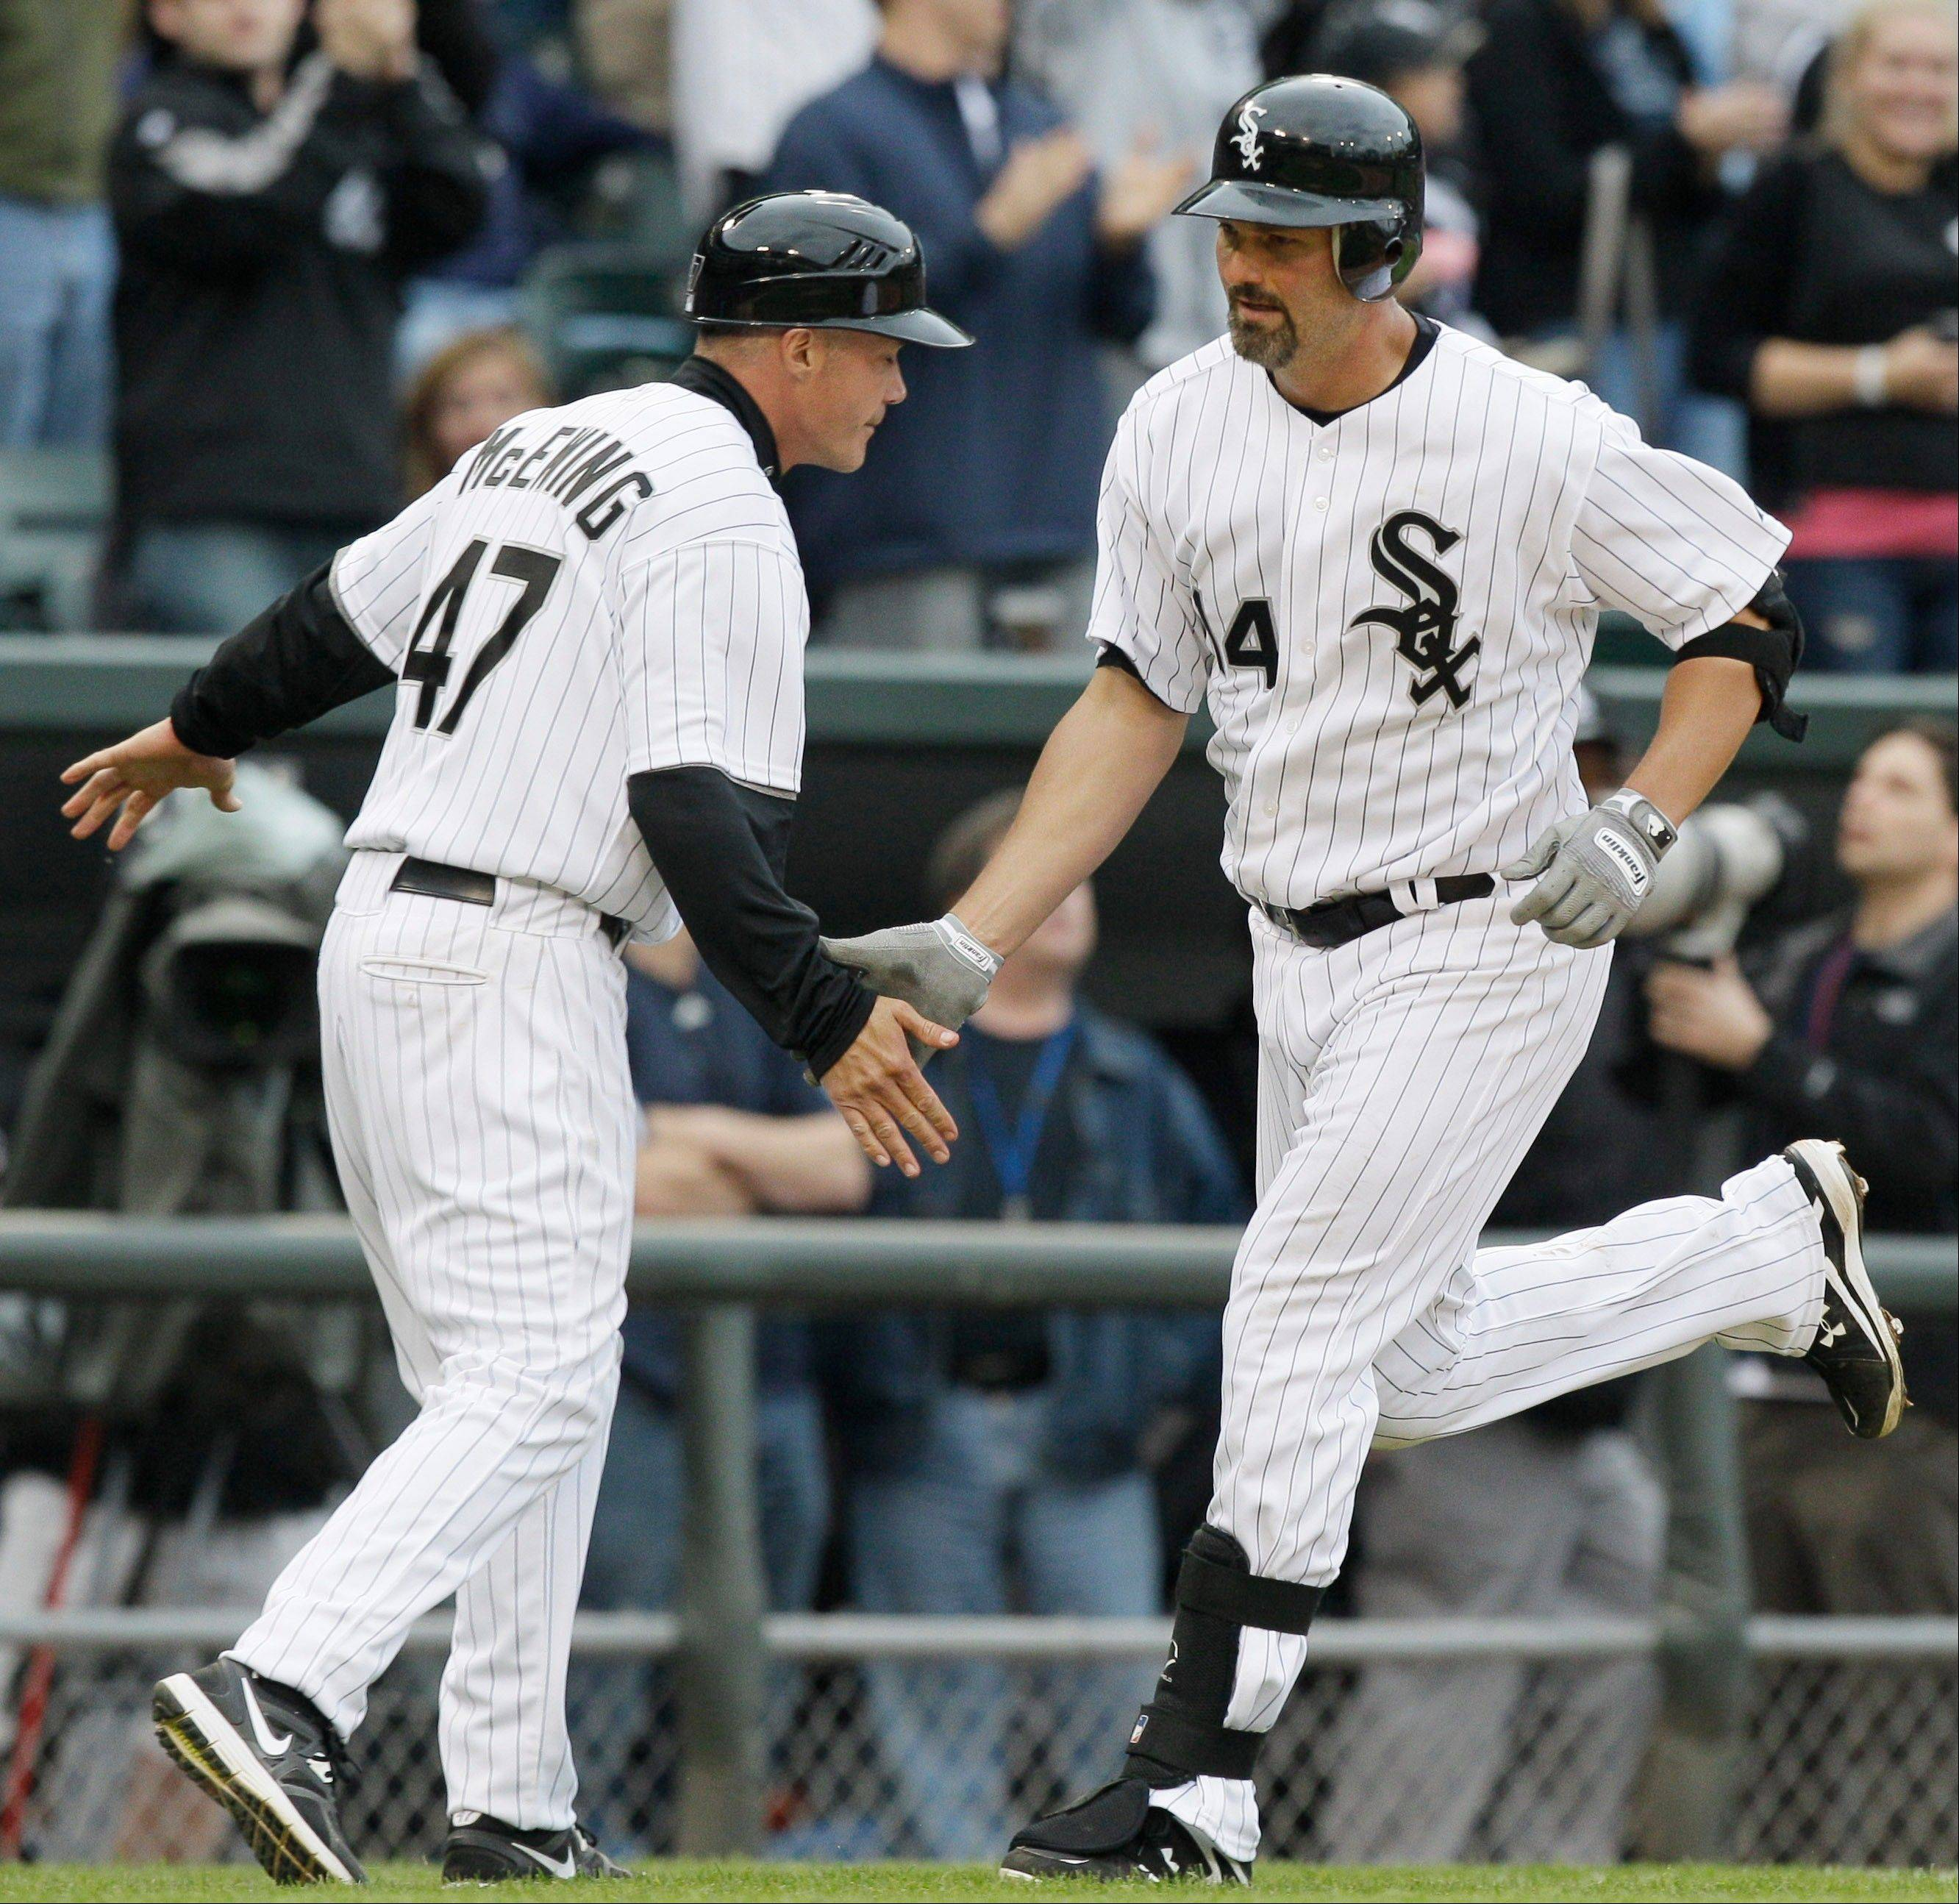 Chicago White Sox's Paul Konerko, right, celebrates with third base coach Joe McEwing after hitting a solo home run during the eighth inning of a baseball game against the Detroit Tigers in Chicago, Saturday, April 14, 2012. The White Sox won 5-1.